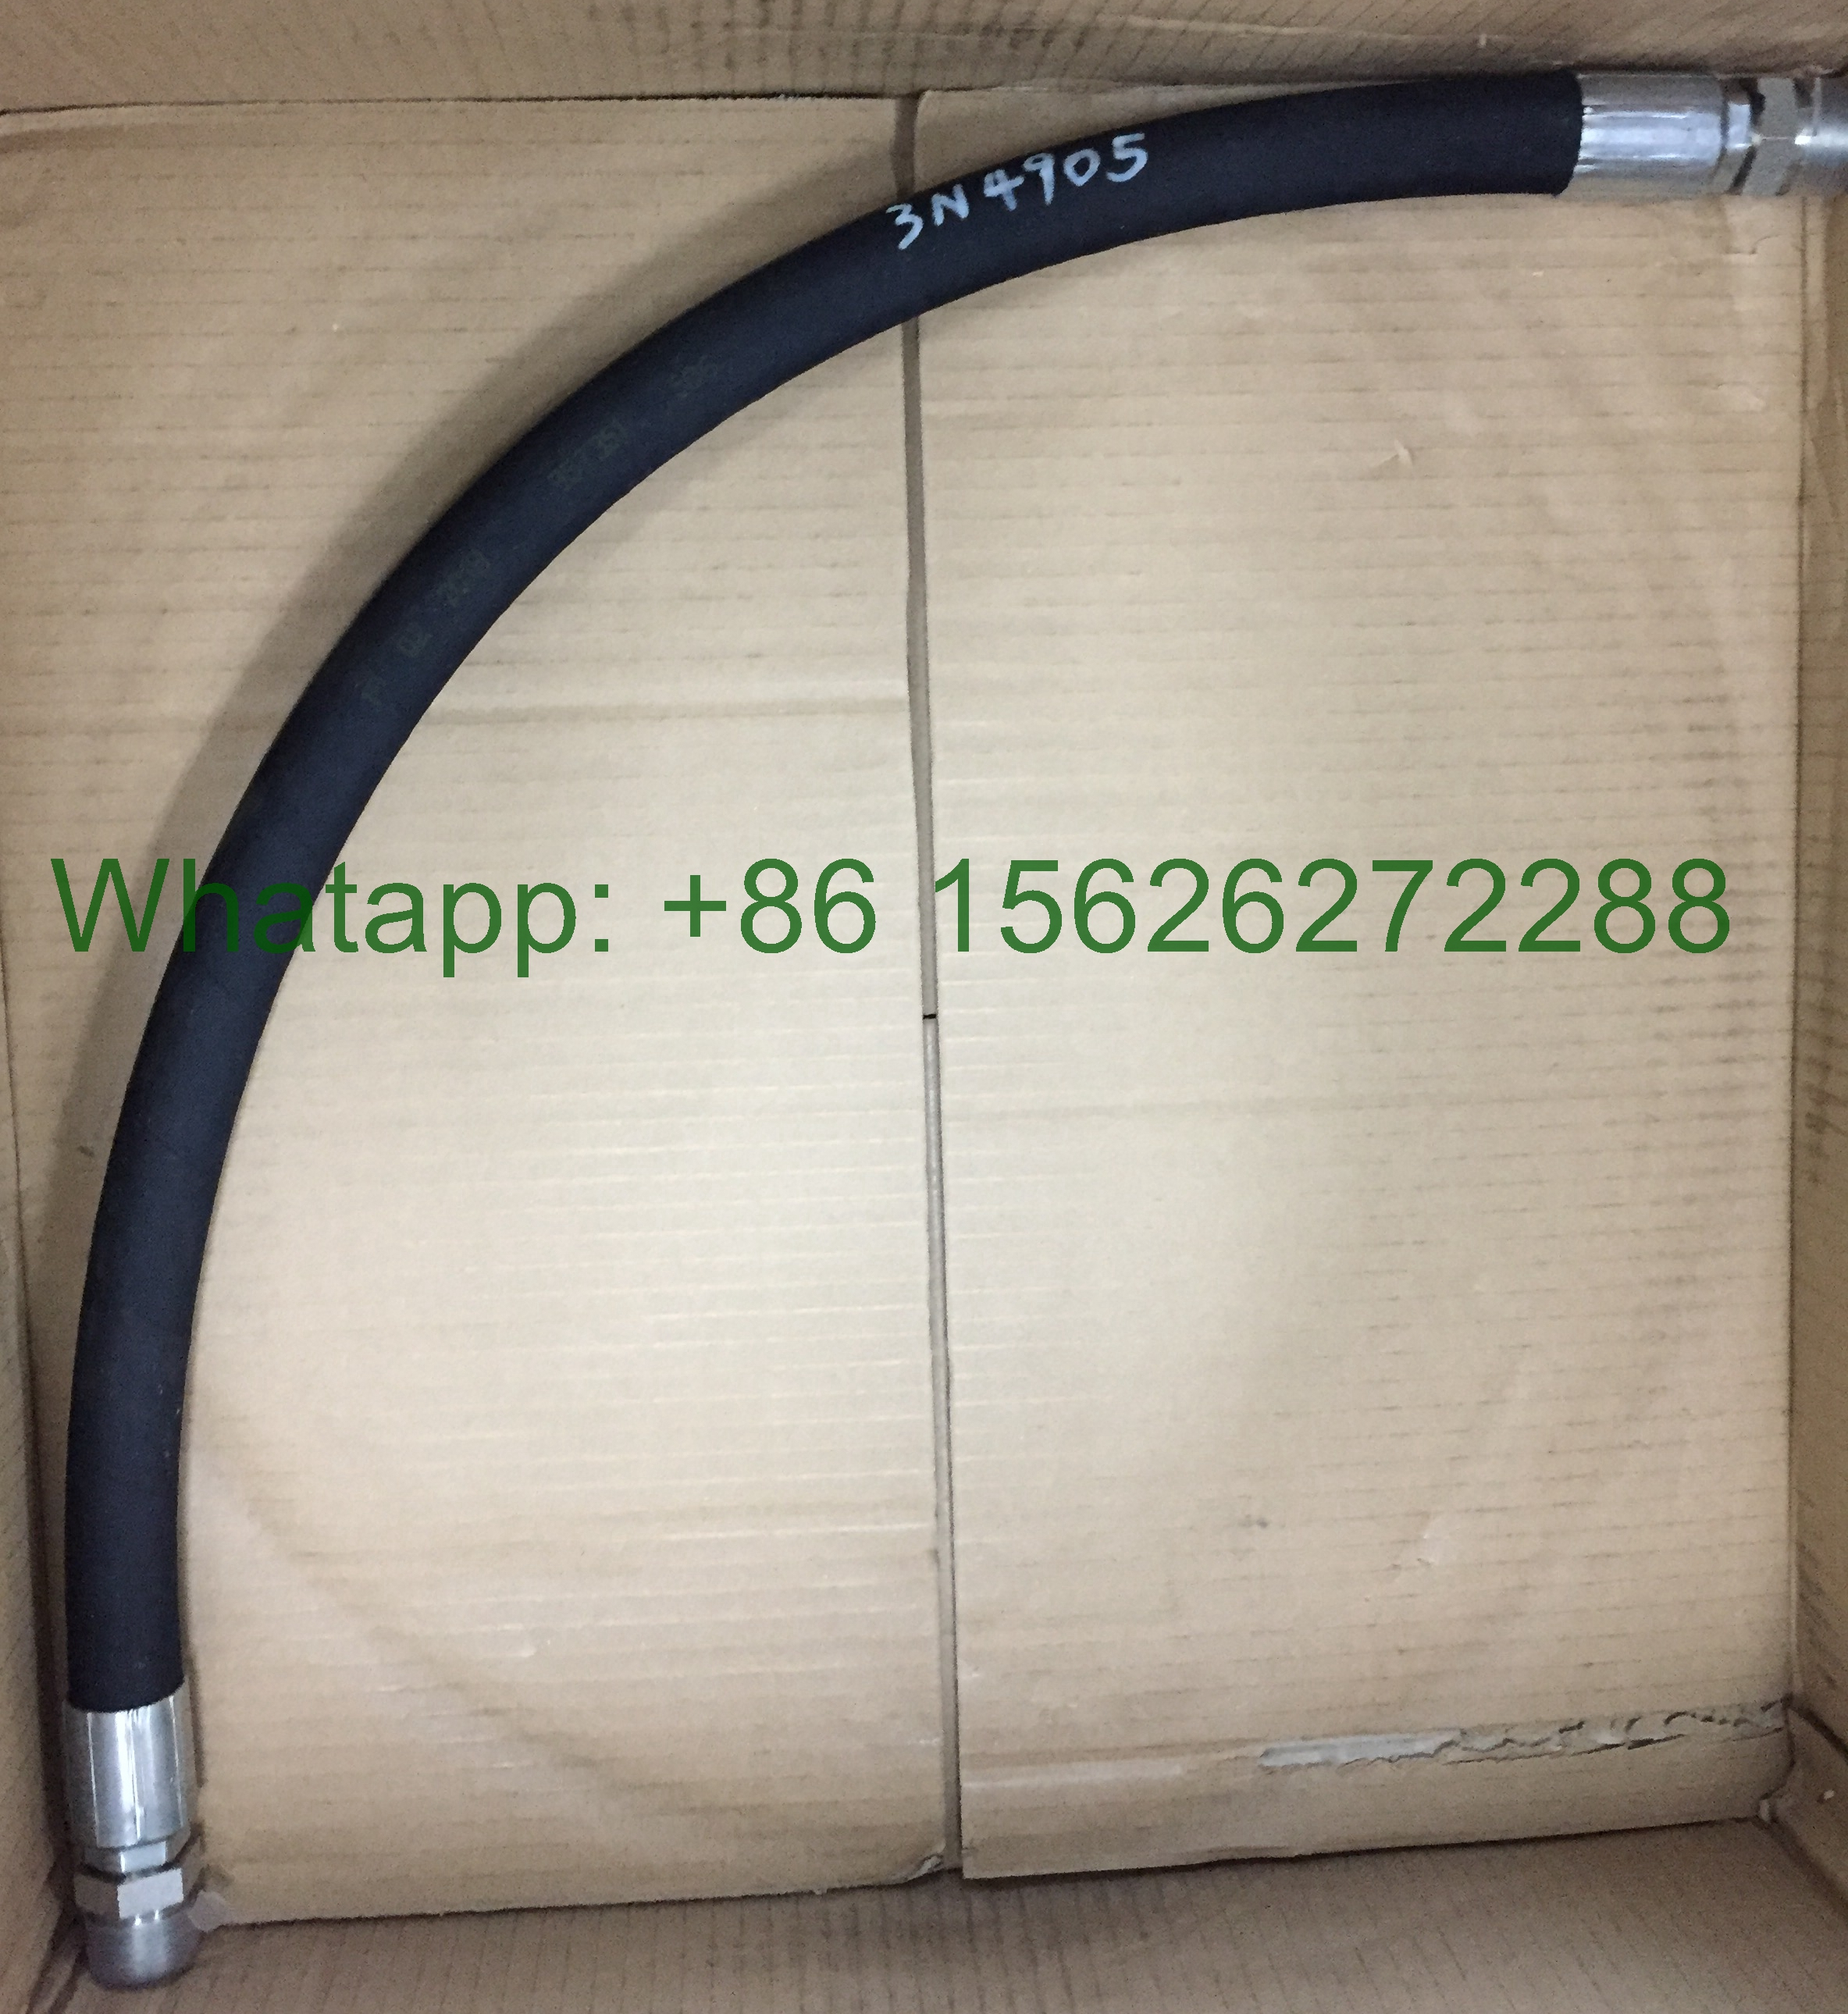 Caterpillar HOSE AS 3N4905